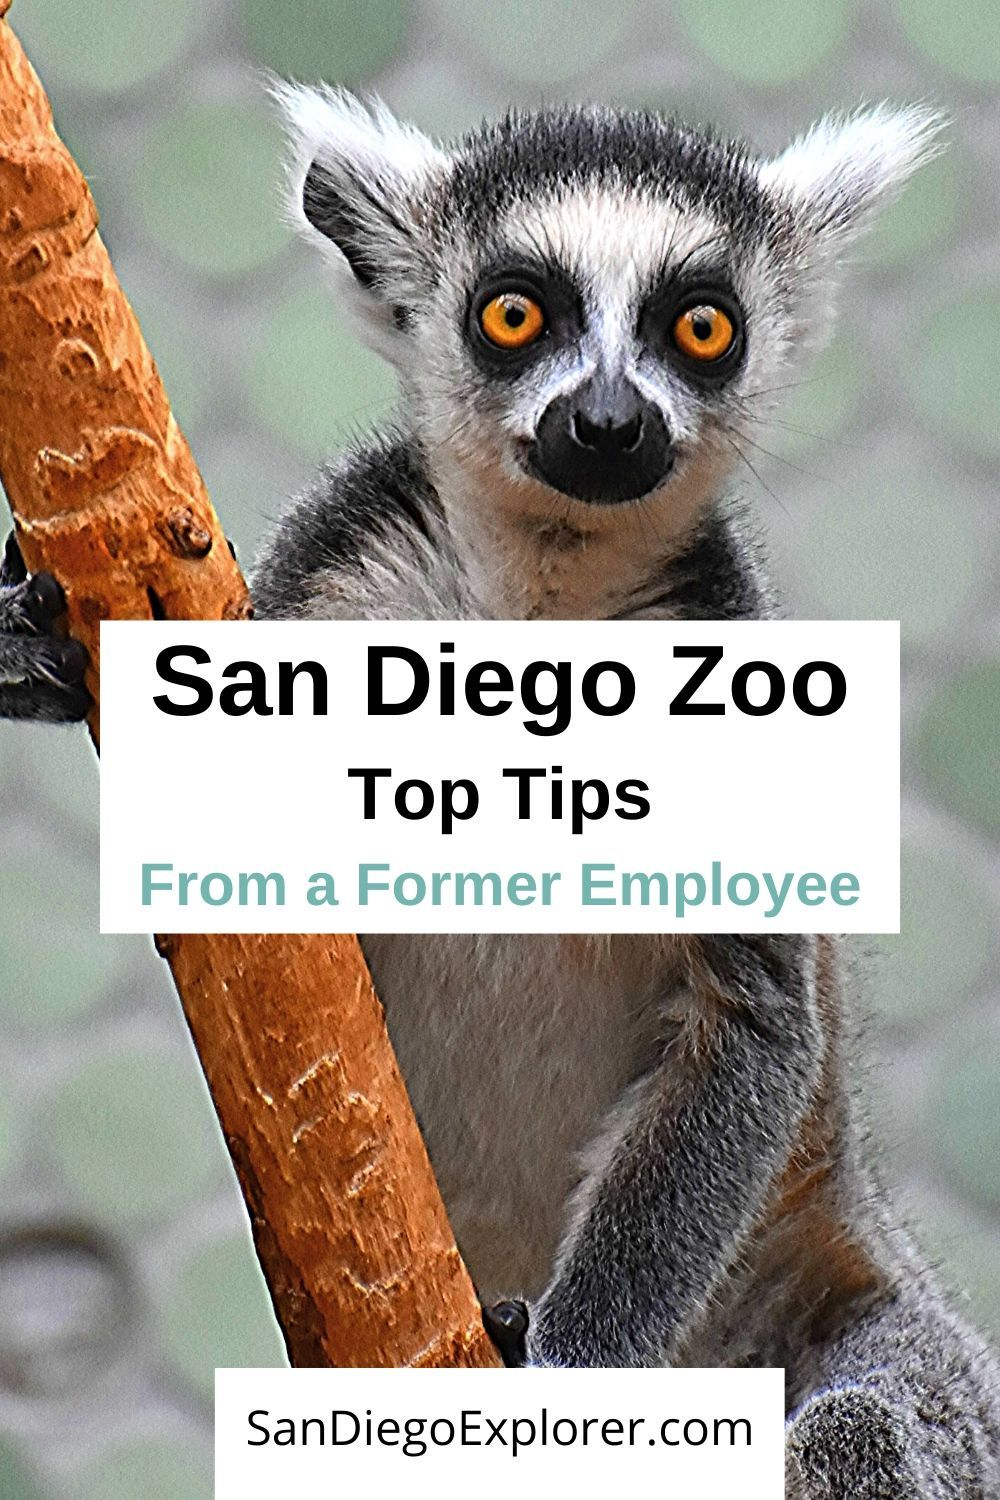 San Diego Zoo Tips by a former Zoo employee. MUST READ before visiting San Diego. If you're going to the zoo, then these are the essential San Diego Zoo tips you need to know before going. Plan your visit to the San Diego Zoo, see some San Diego Zoo pictures, tips to get cheap San Diego zoo tickets #sandiegoitinerary #traveltips #travel #sandiegotrip #visitsandiego #sandiegotravel #socallifestyle #californiatravel #sandiego #sandiegocalifornia #california #sandiegozoo #sandiegoexplorer